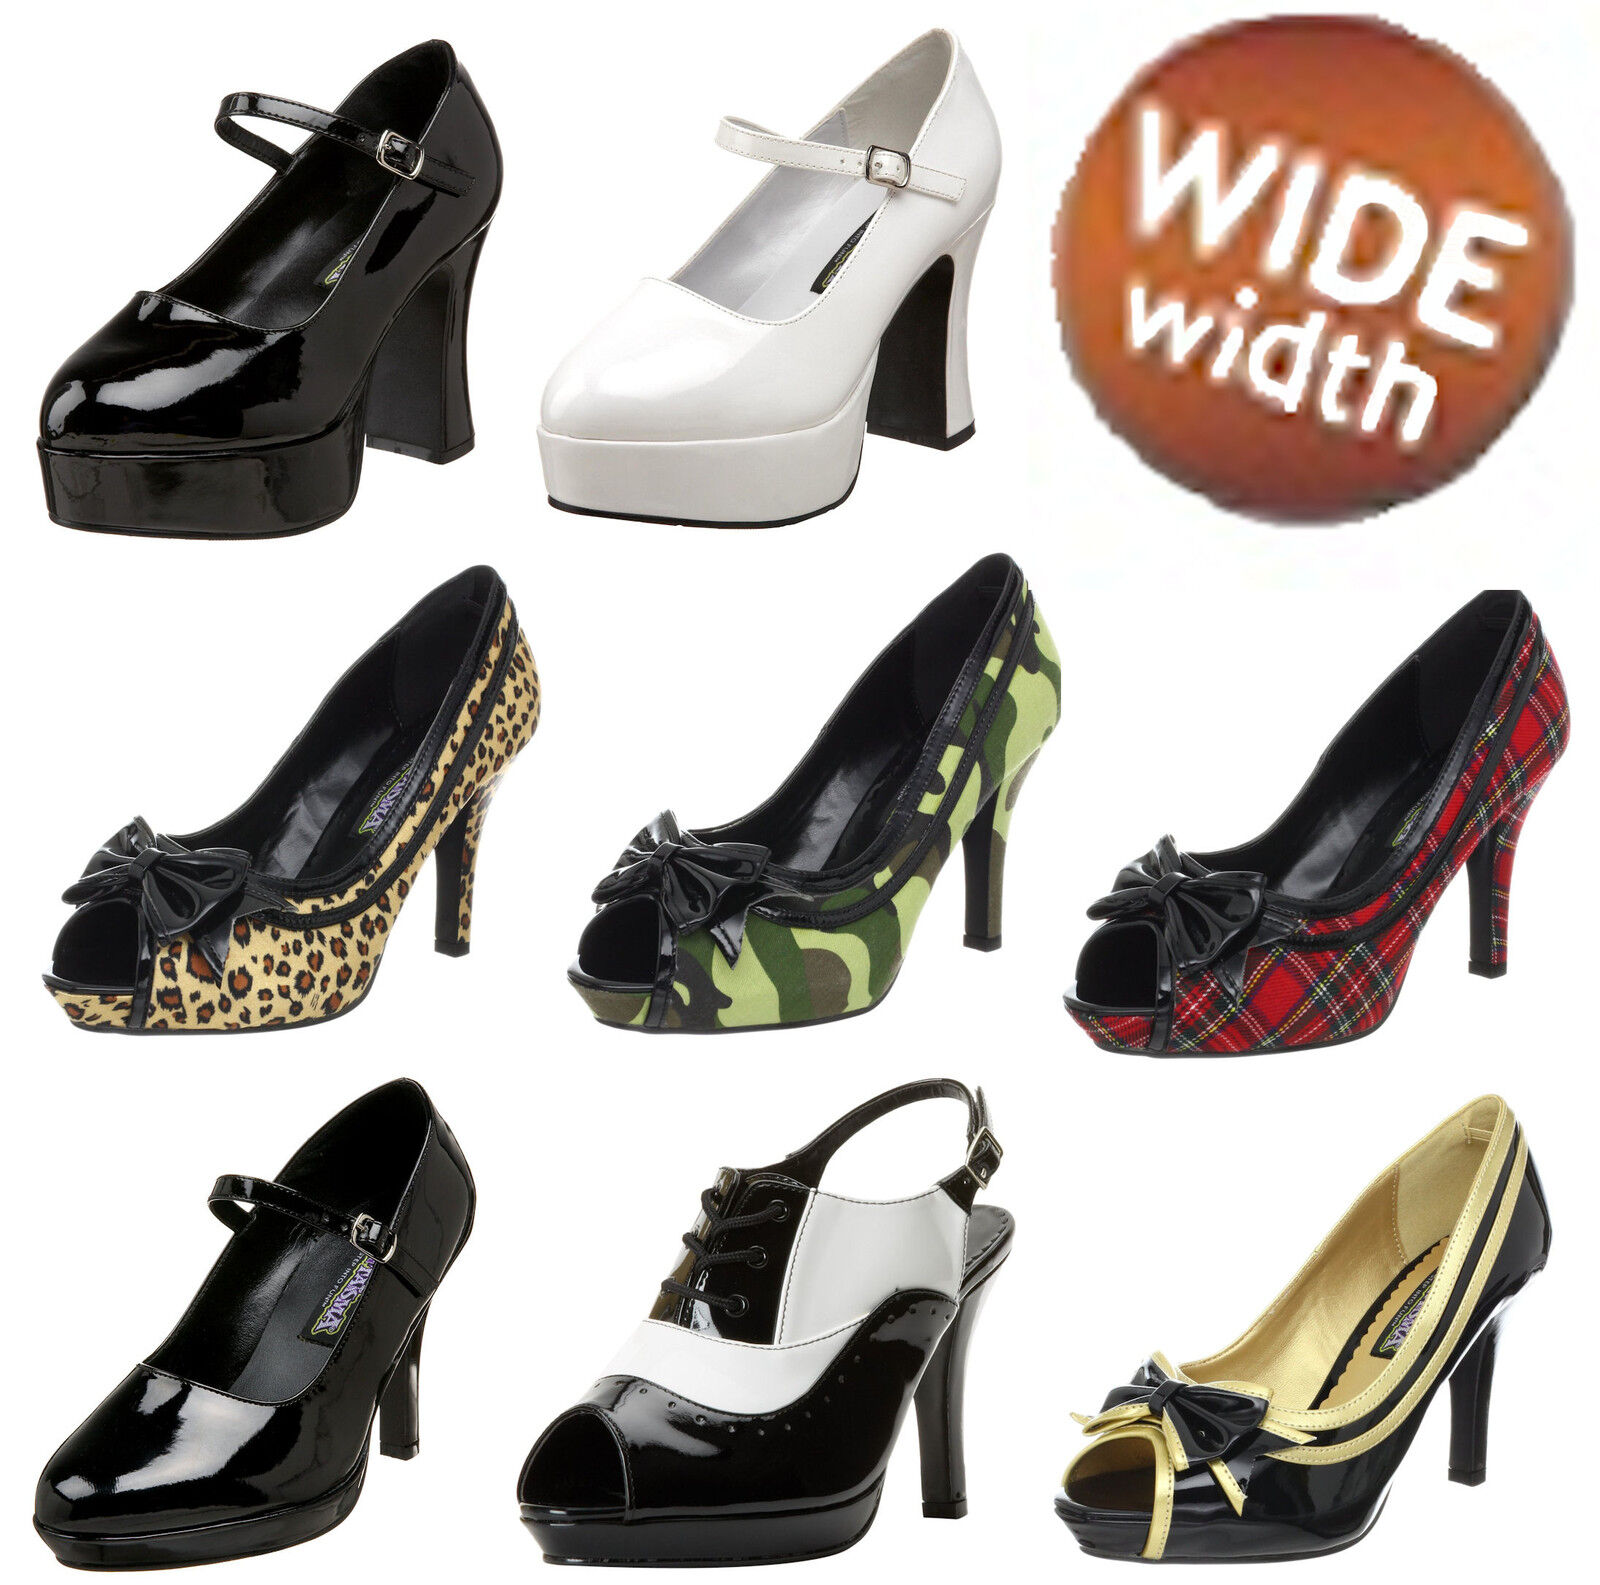 FUNTASMA WIDE WIDTH shoes CONTESSA GANGSTER KITTY MARYJANE PILOT PREPPY SOLDIER